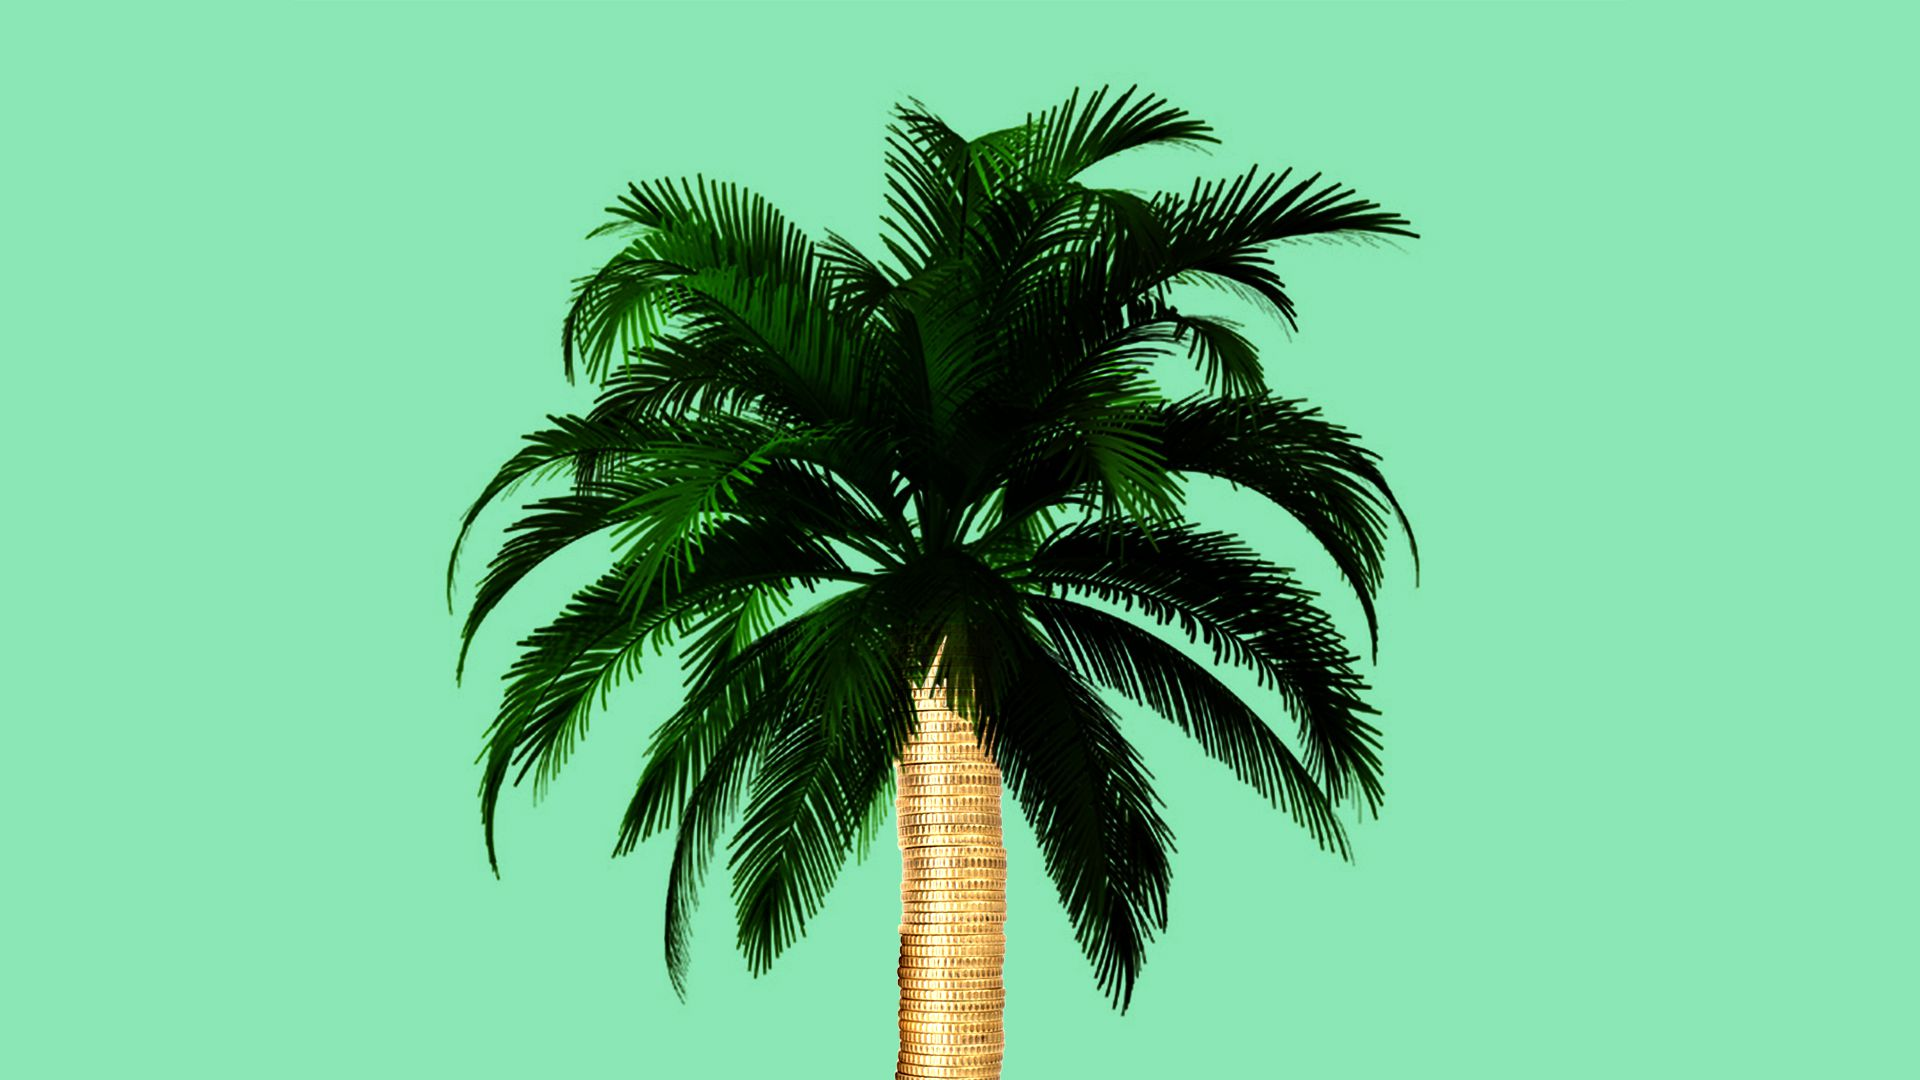 Illustration of a palm tree with a stack of gold coins as the trunk.